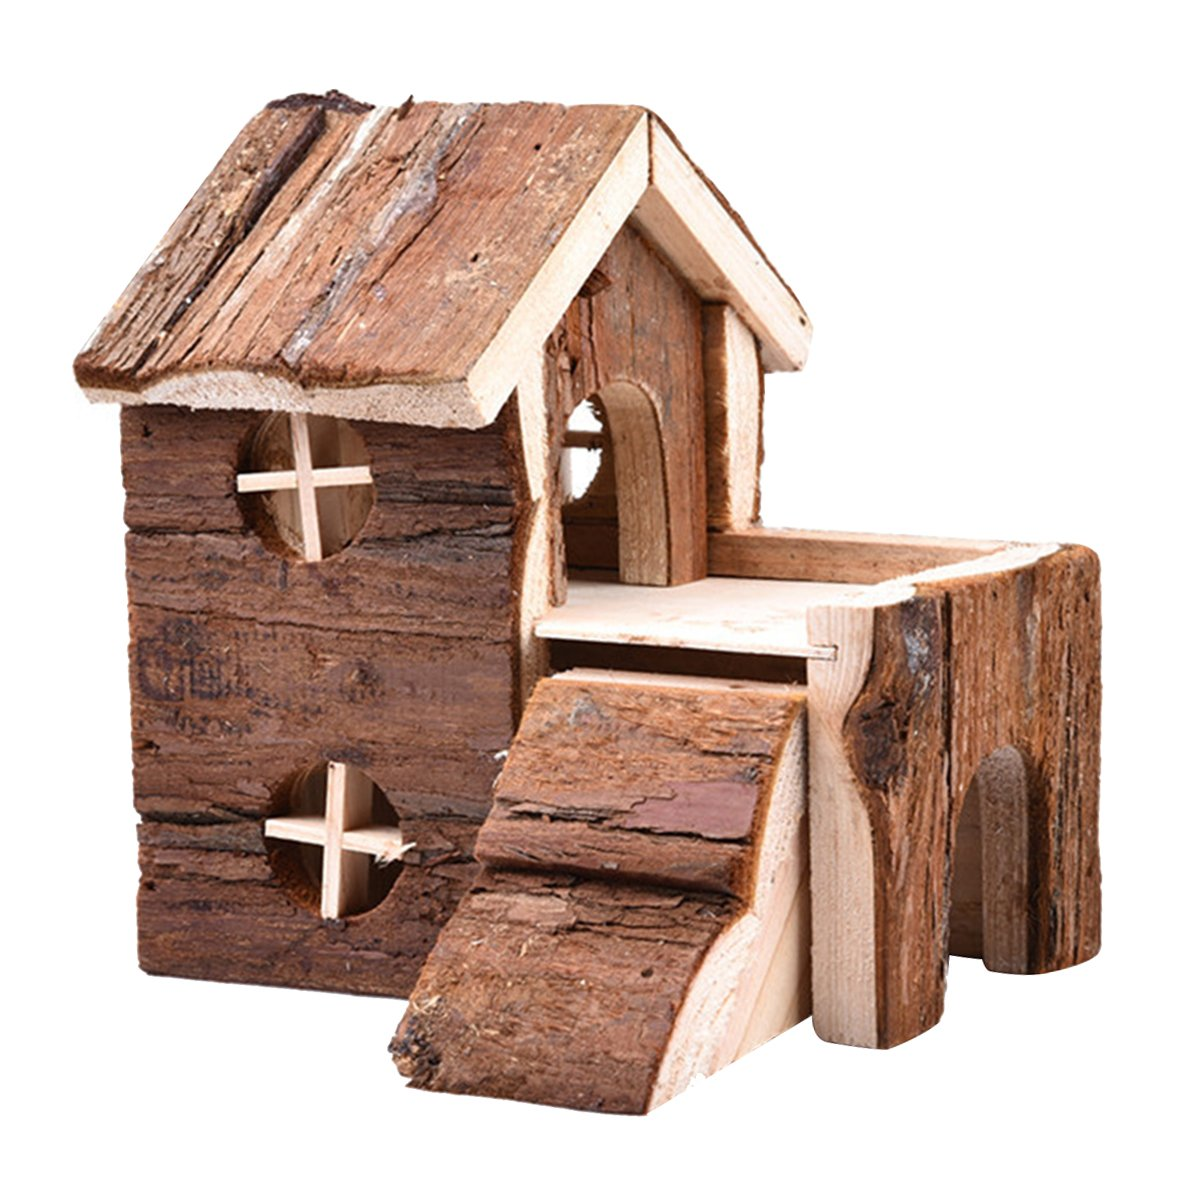 bouti1583 Double Layers Hamster House Wooden Small Animals Pet Rats Gerbil Hideout Wood Hut Chews Toys by bouti1583